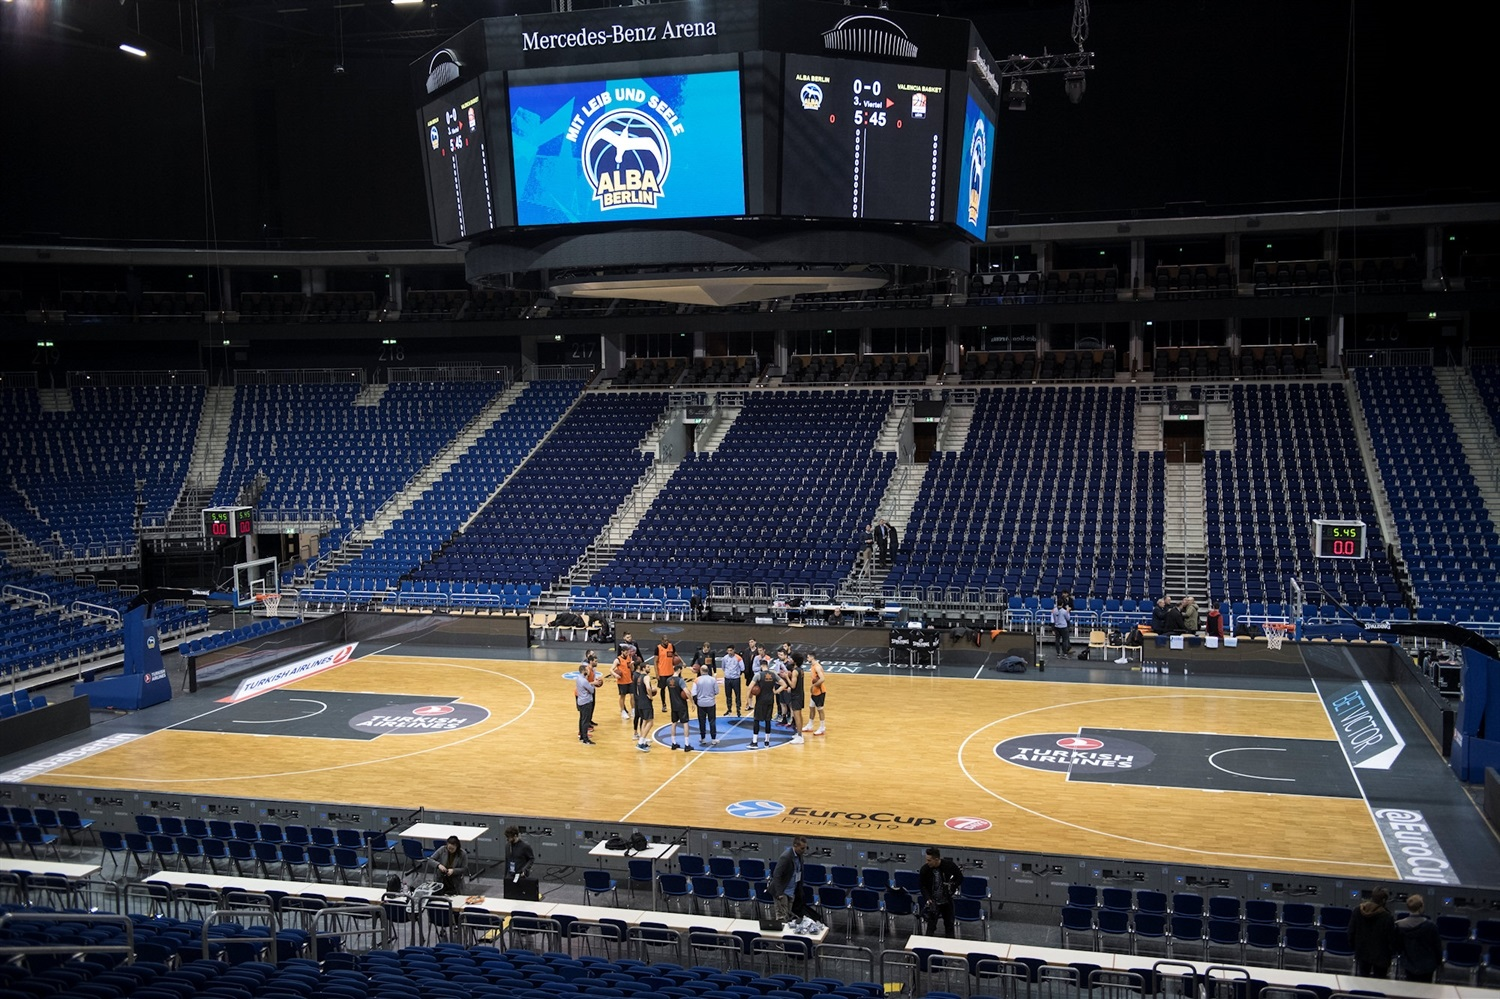 Valencia Basket practices in Mercedes-Benz Arena - Finals Game 2 - EC18